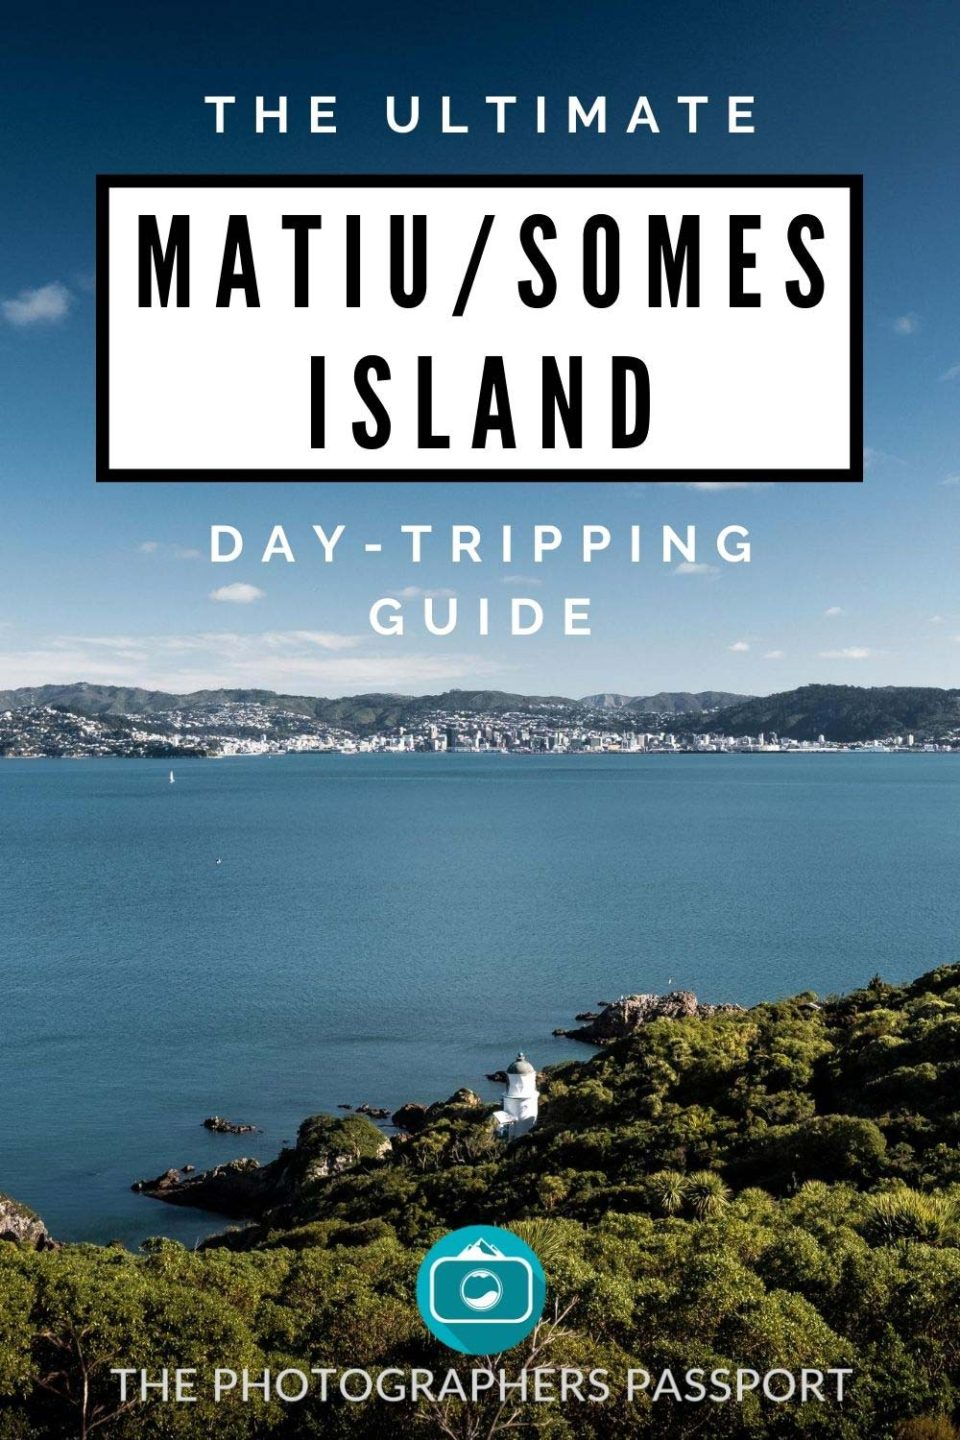 Matiu/Somes Island is a great place to visit while you're in Wellington. To learn more about this great day-tripping location click here.